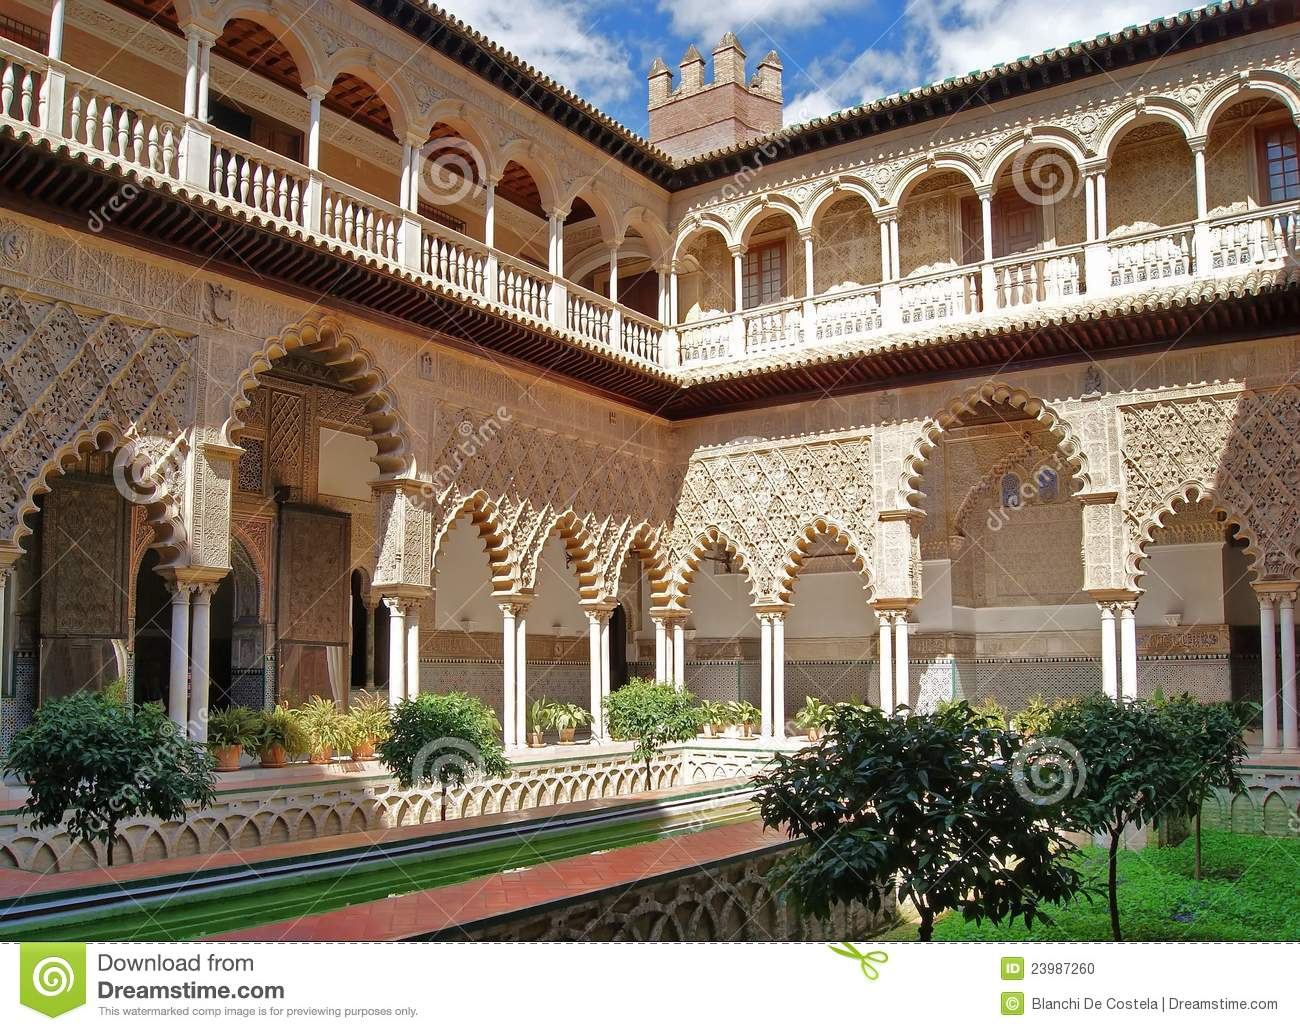 Real Alcazar Of Seville Stock Photo - Image: 23987260